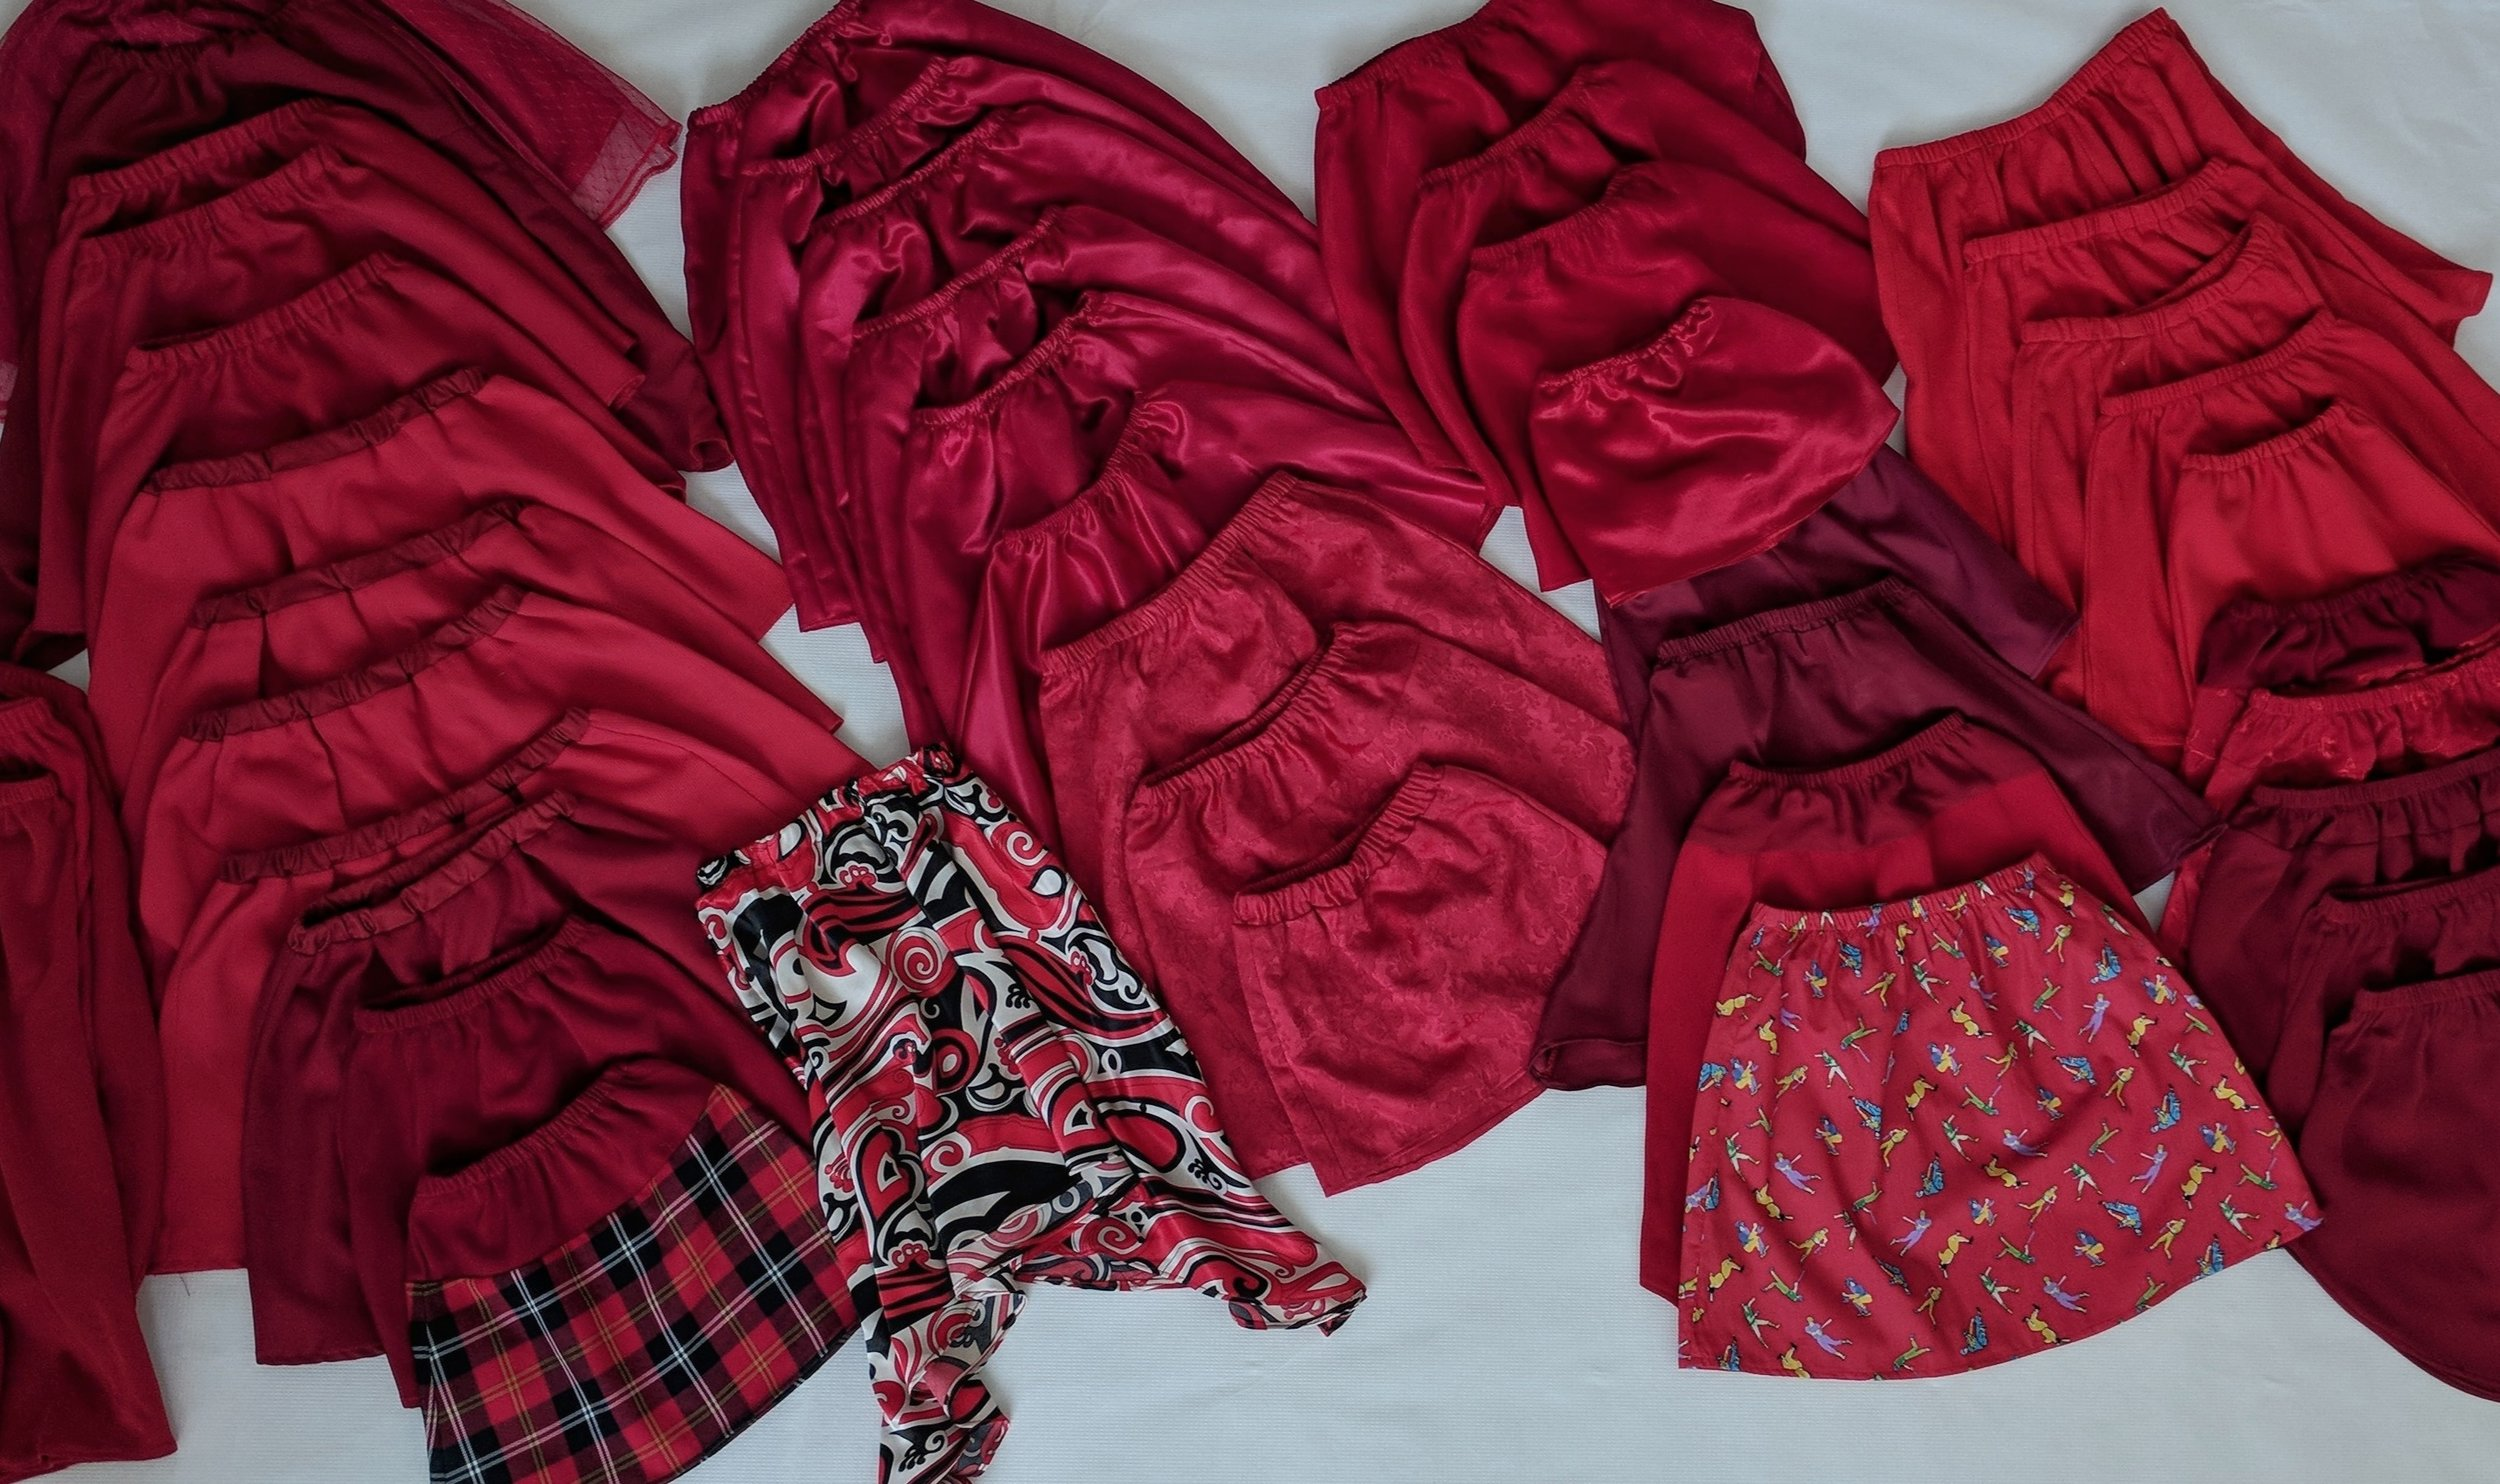 Sew Good Makes for Charity - They don't have to be fancy; an elasticized dirndl is quick and easy.